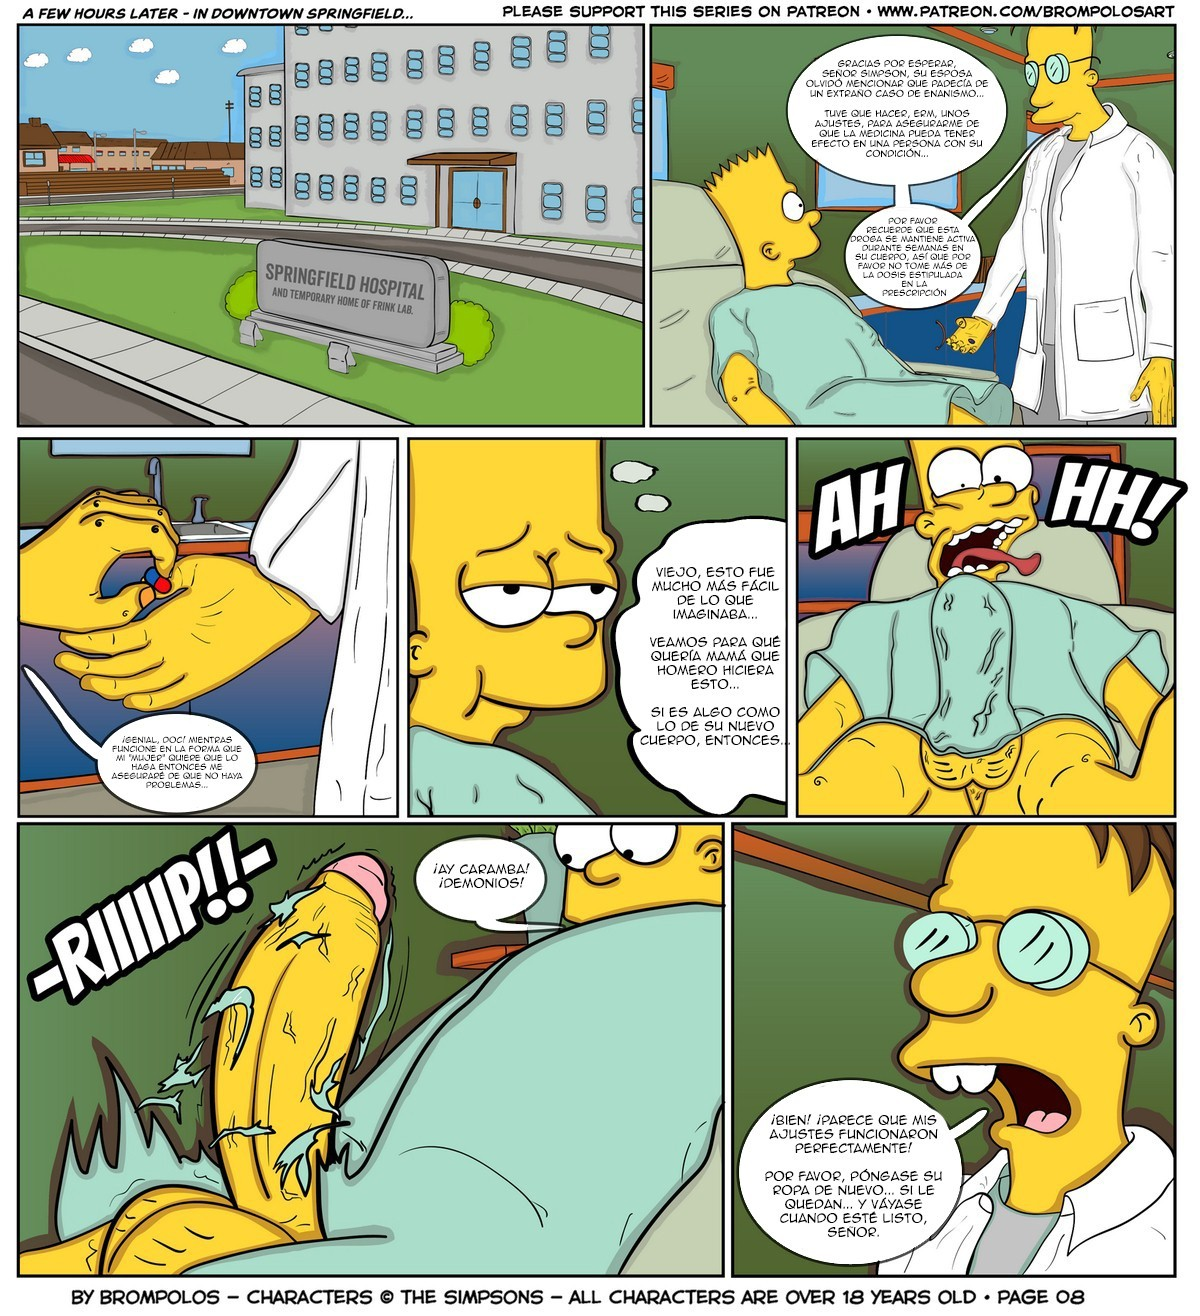 The-Simpsons-are-The-Sexenteins-11.jpg